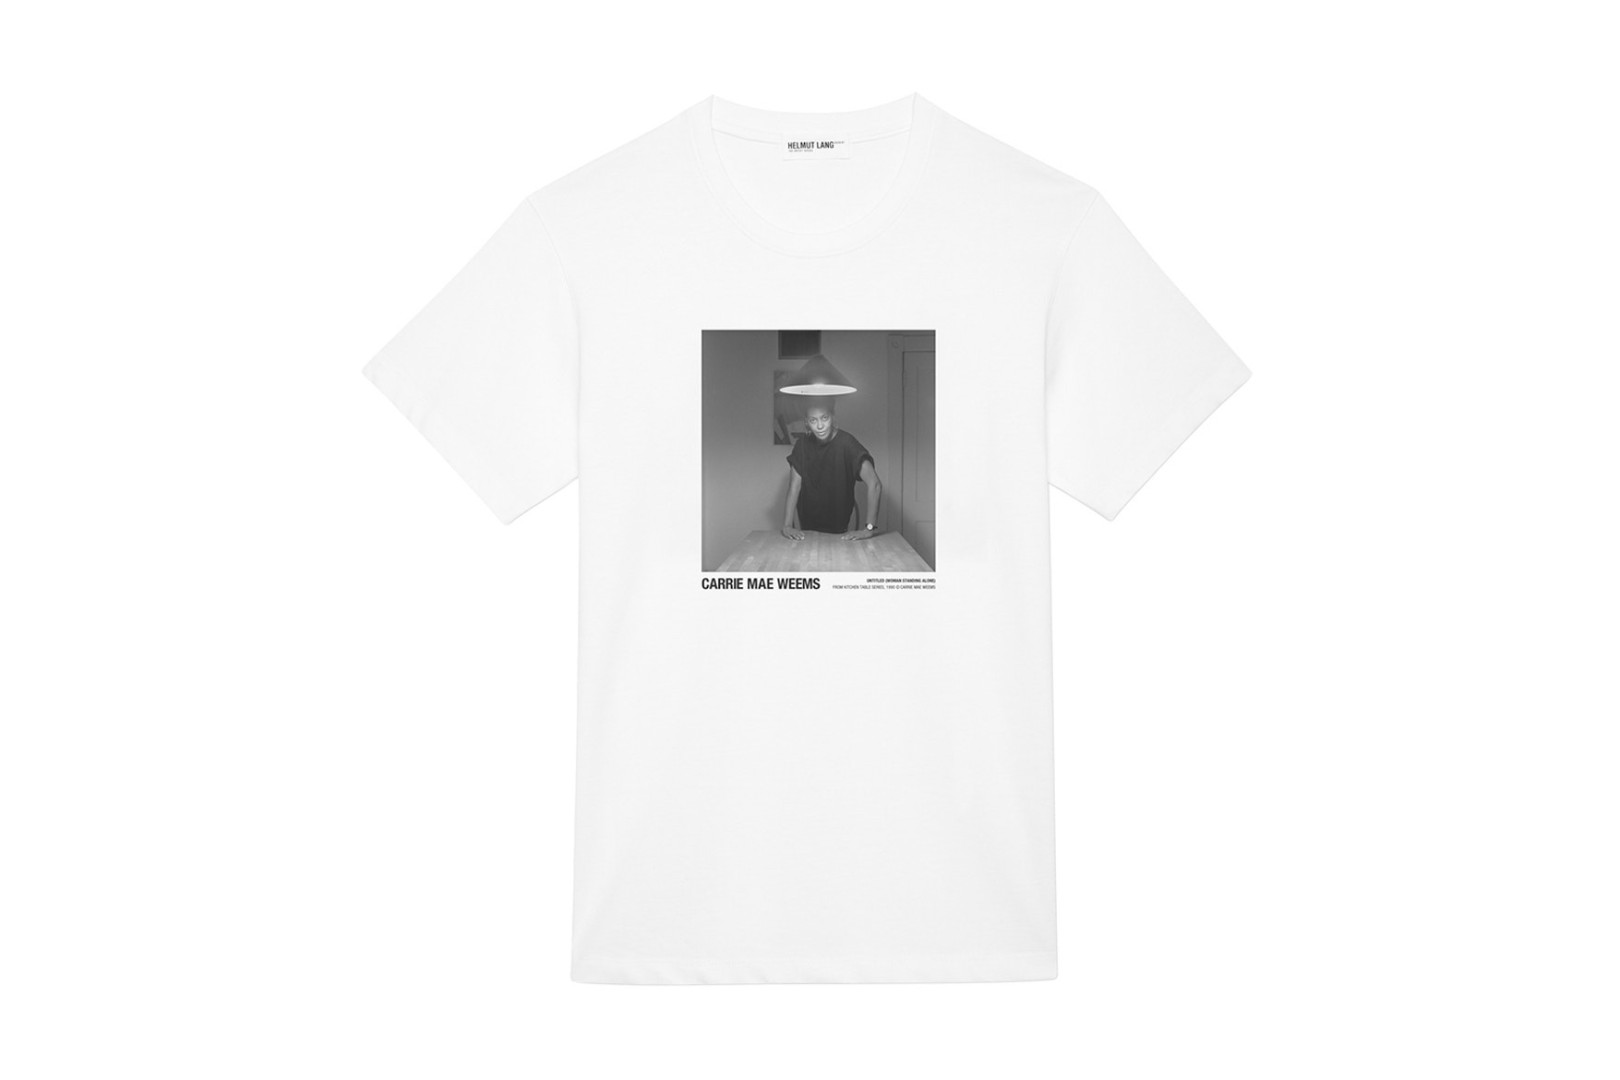 bd1508bcb Helmut Lang and US artist Carrie Mae Weems team up for T-shirt collection |  South China Morning Post